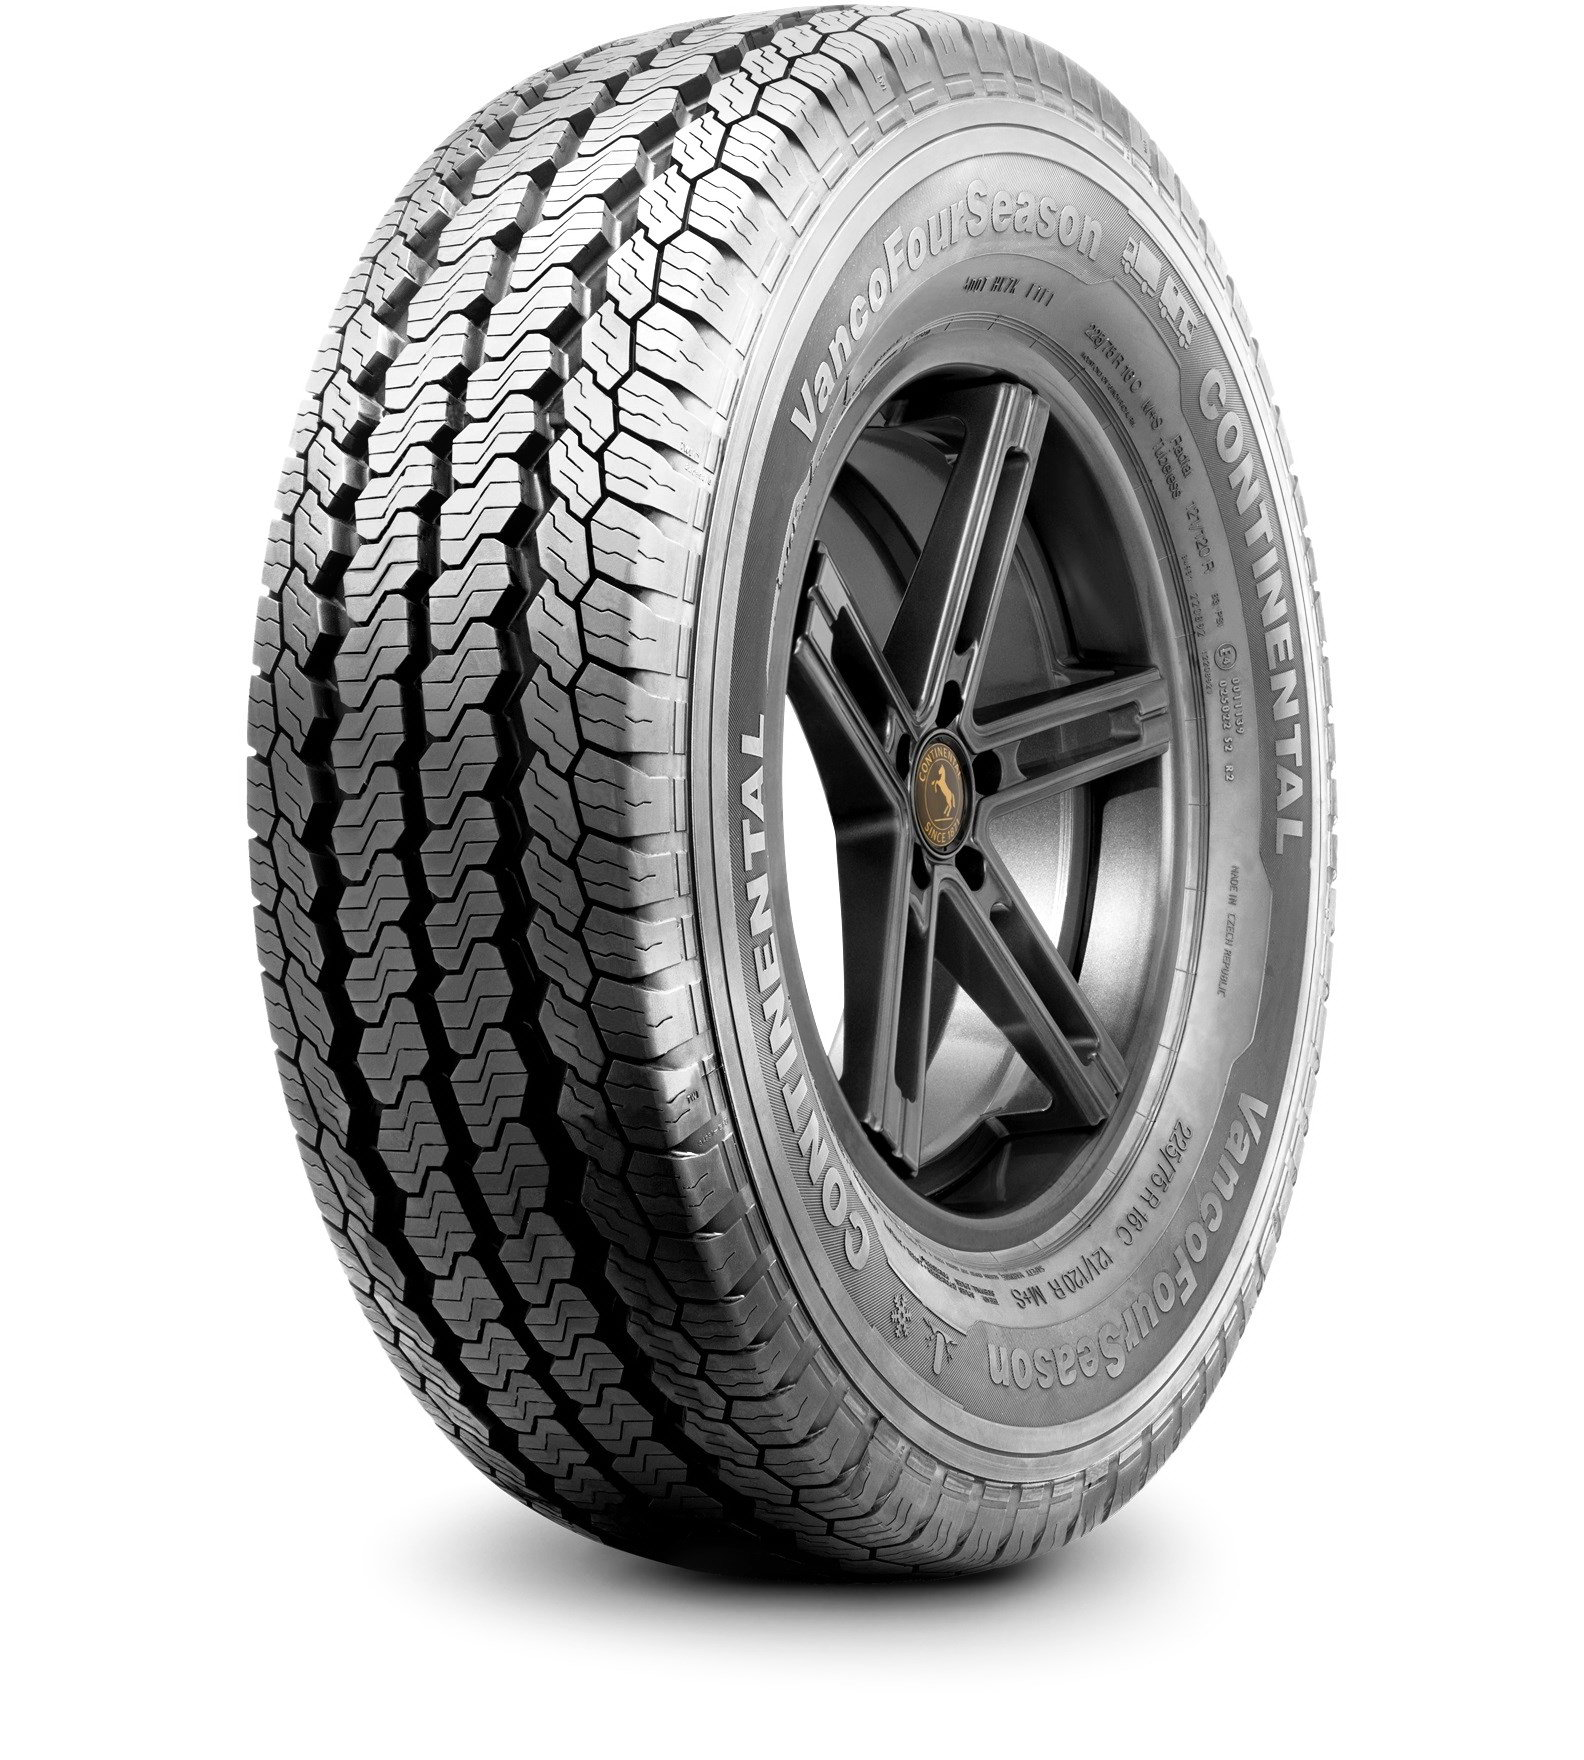 Anvelope all seasons CONTINENTAL VANCONTACT 4SEASON 8PR 195/75 R16C 107/105R